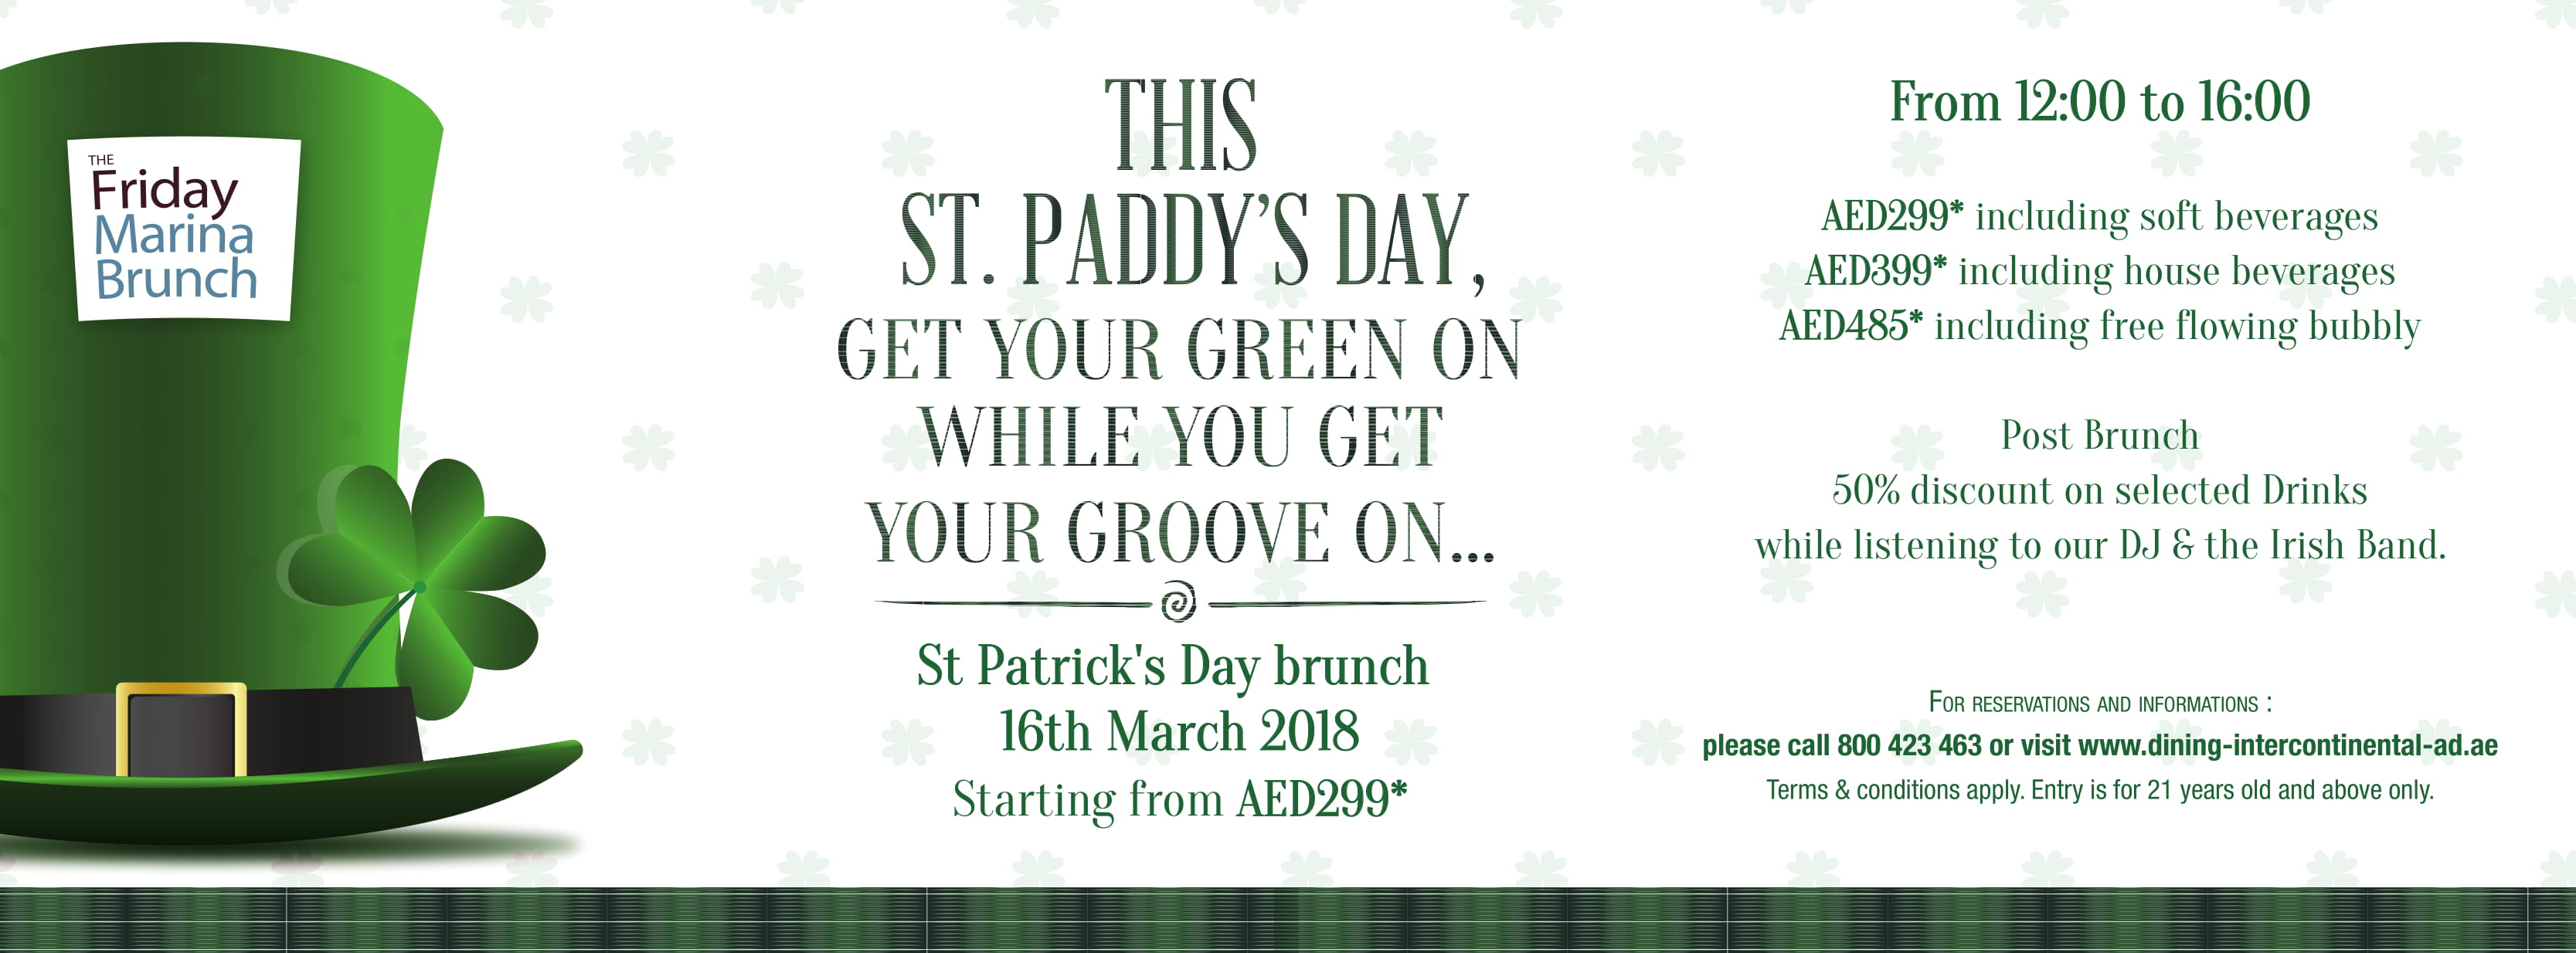 St. Patrick's Brunch @ Intercontinental